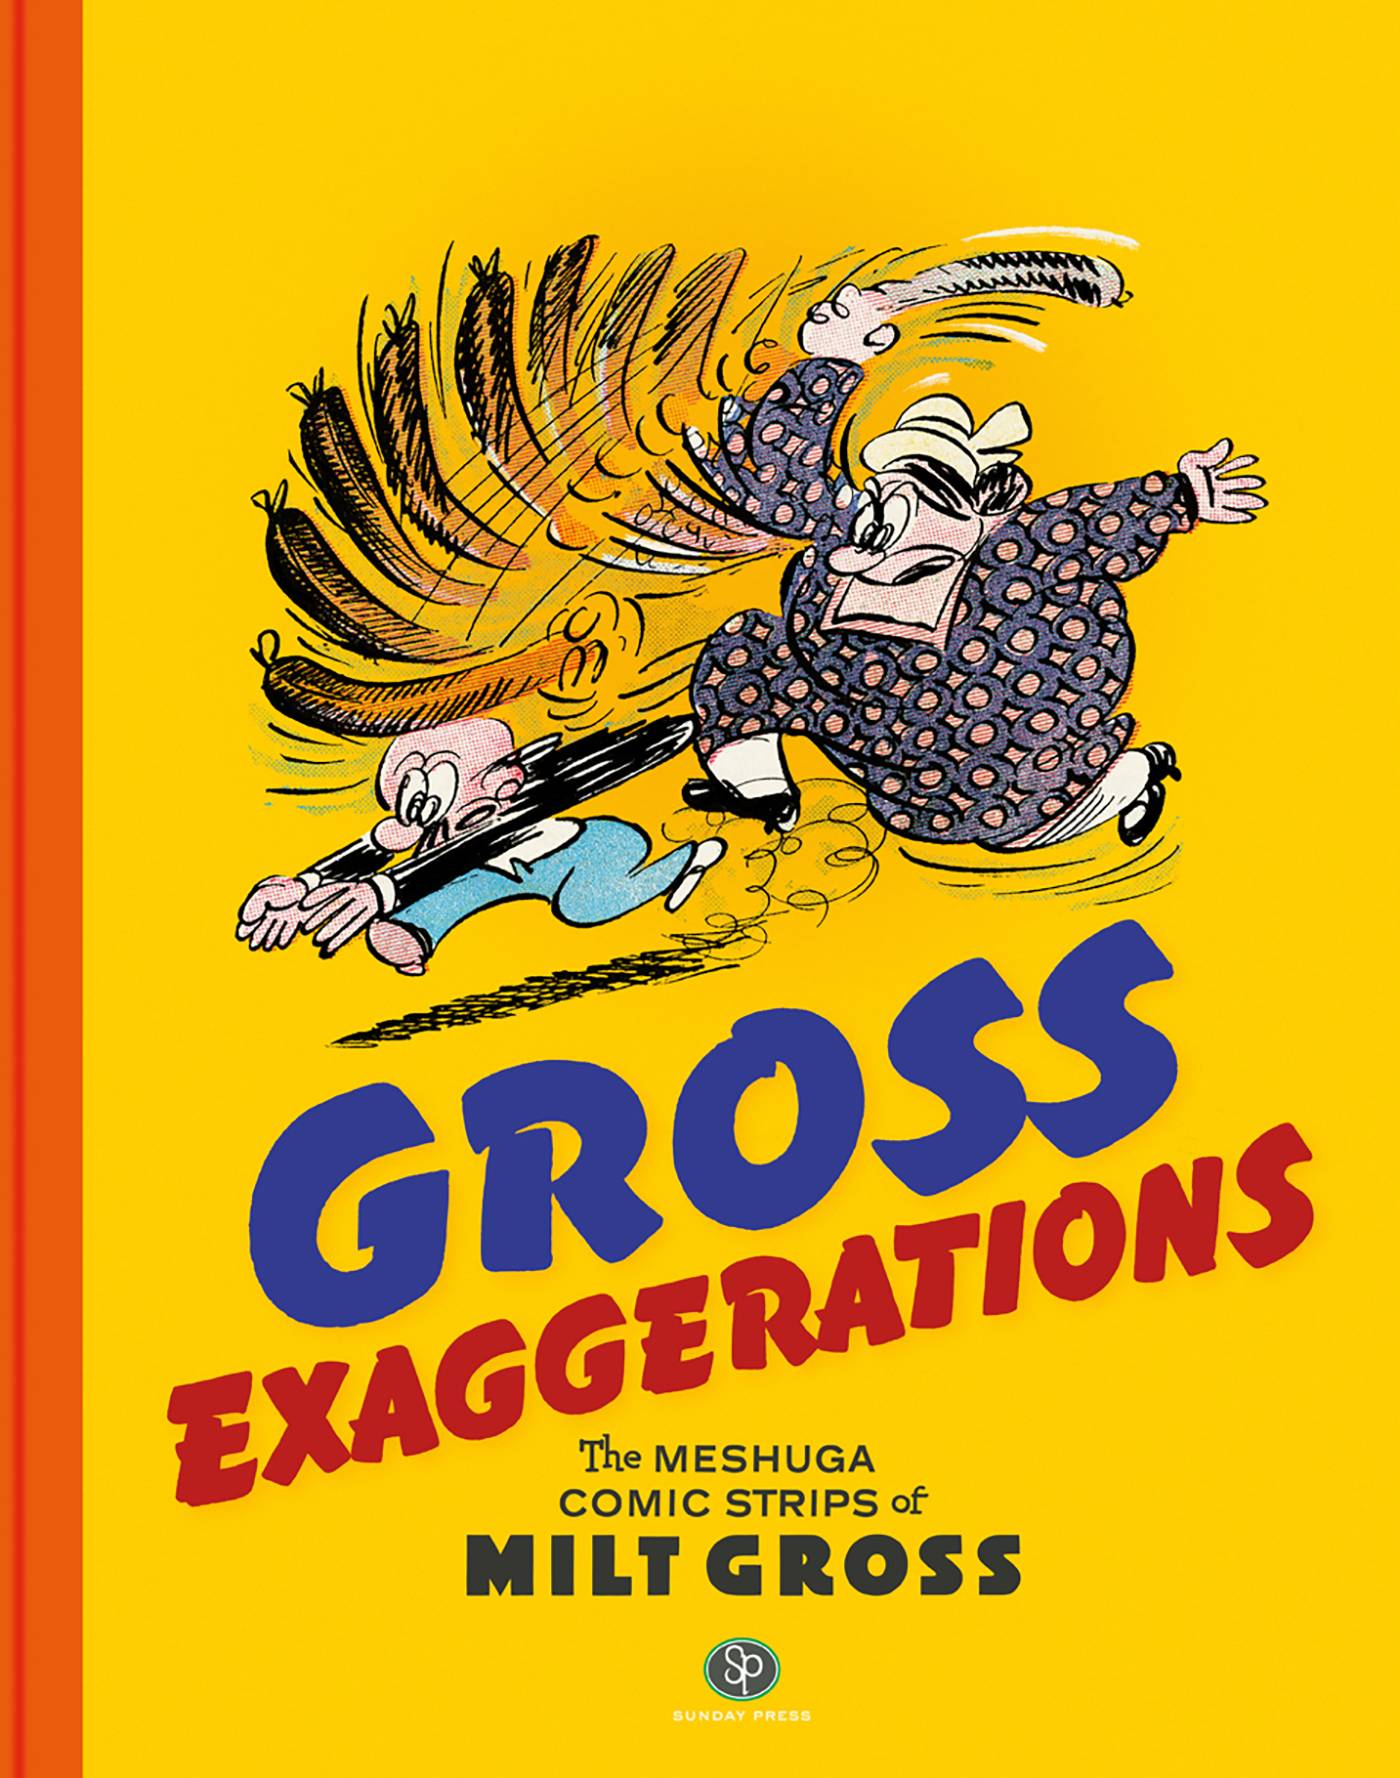 GROSS EXAGGERATIONS MESHUGA COMICS MILET GROSS HC